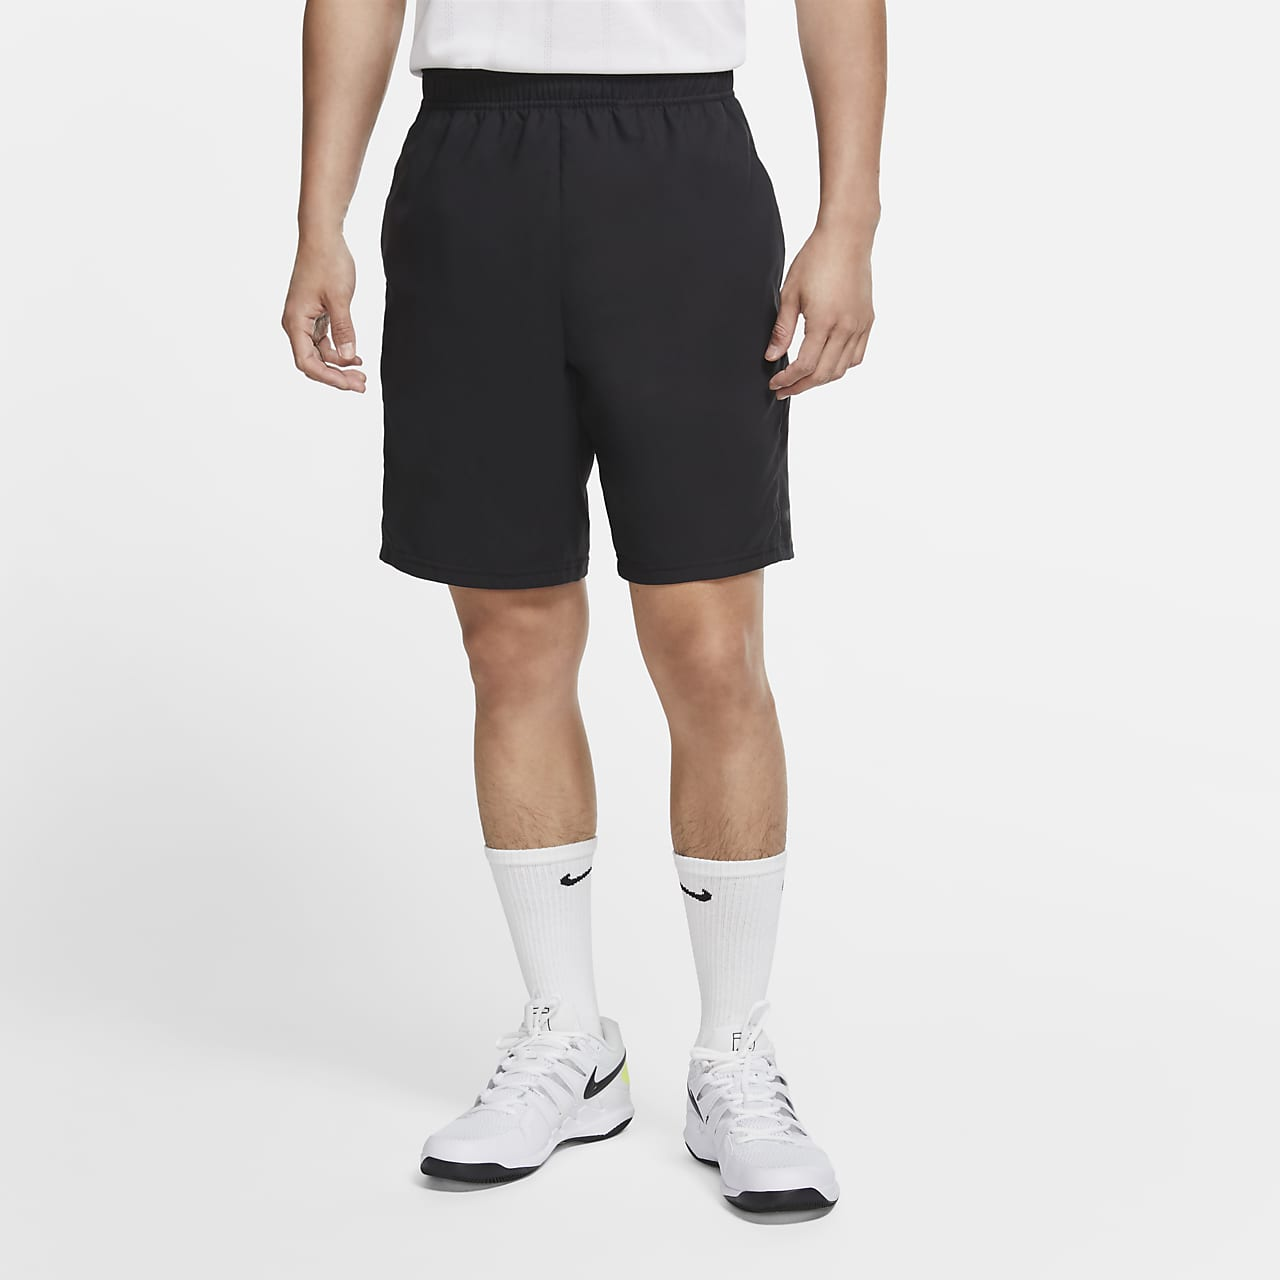 NikeCourt Dri-FIT Men's 23cm (approx.) Tennis Shorts